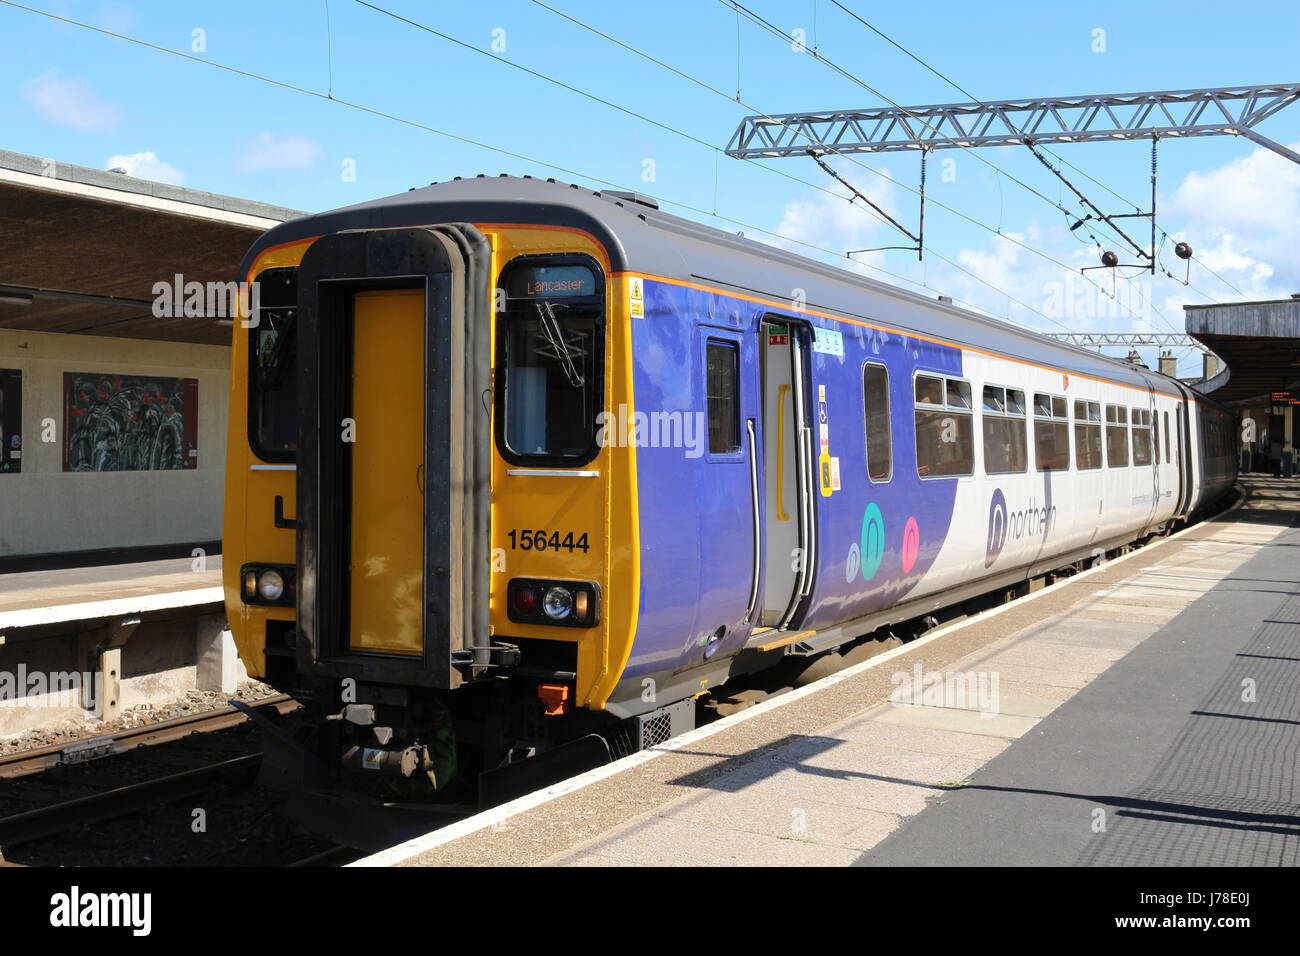 Class 156 super sprinter diesel multiple unit in the new Northern livery at platform 1 at Carnforth railway station - Stock Image